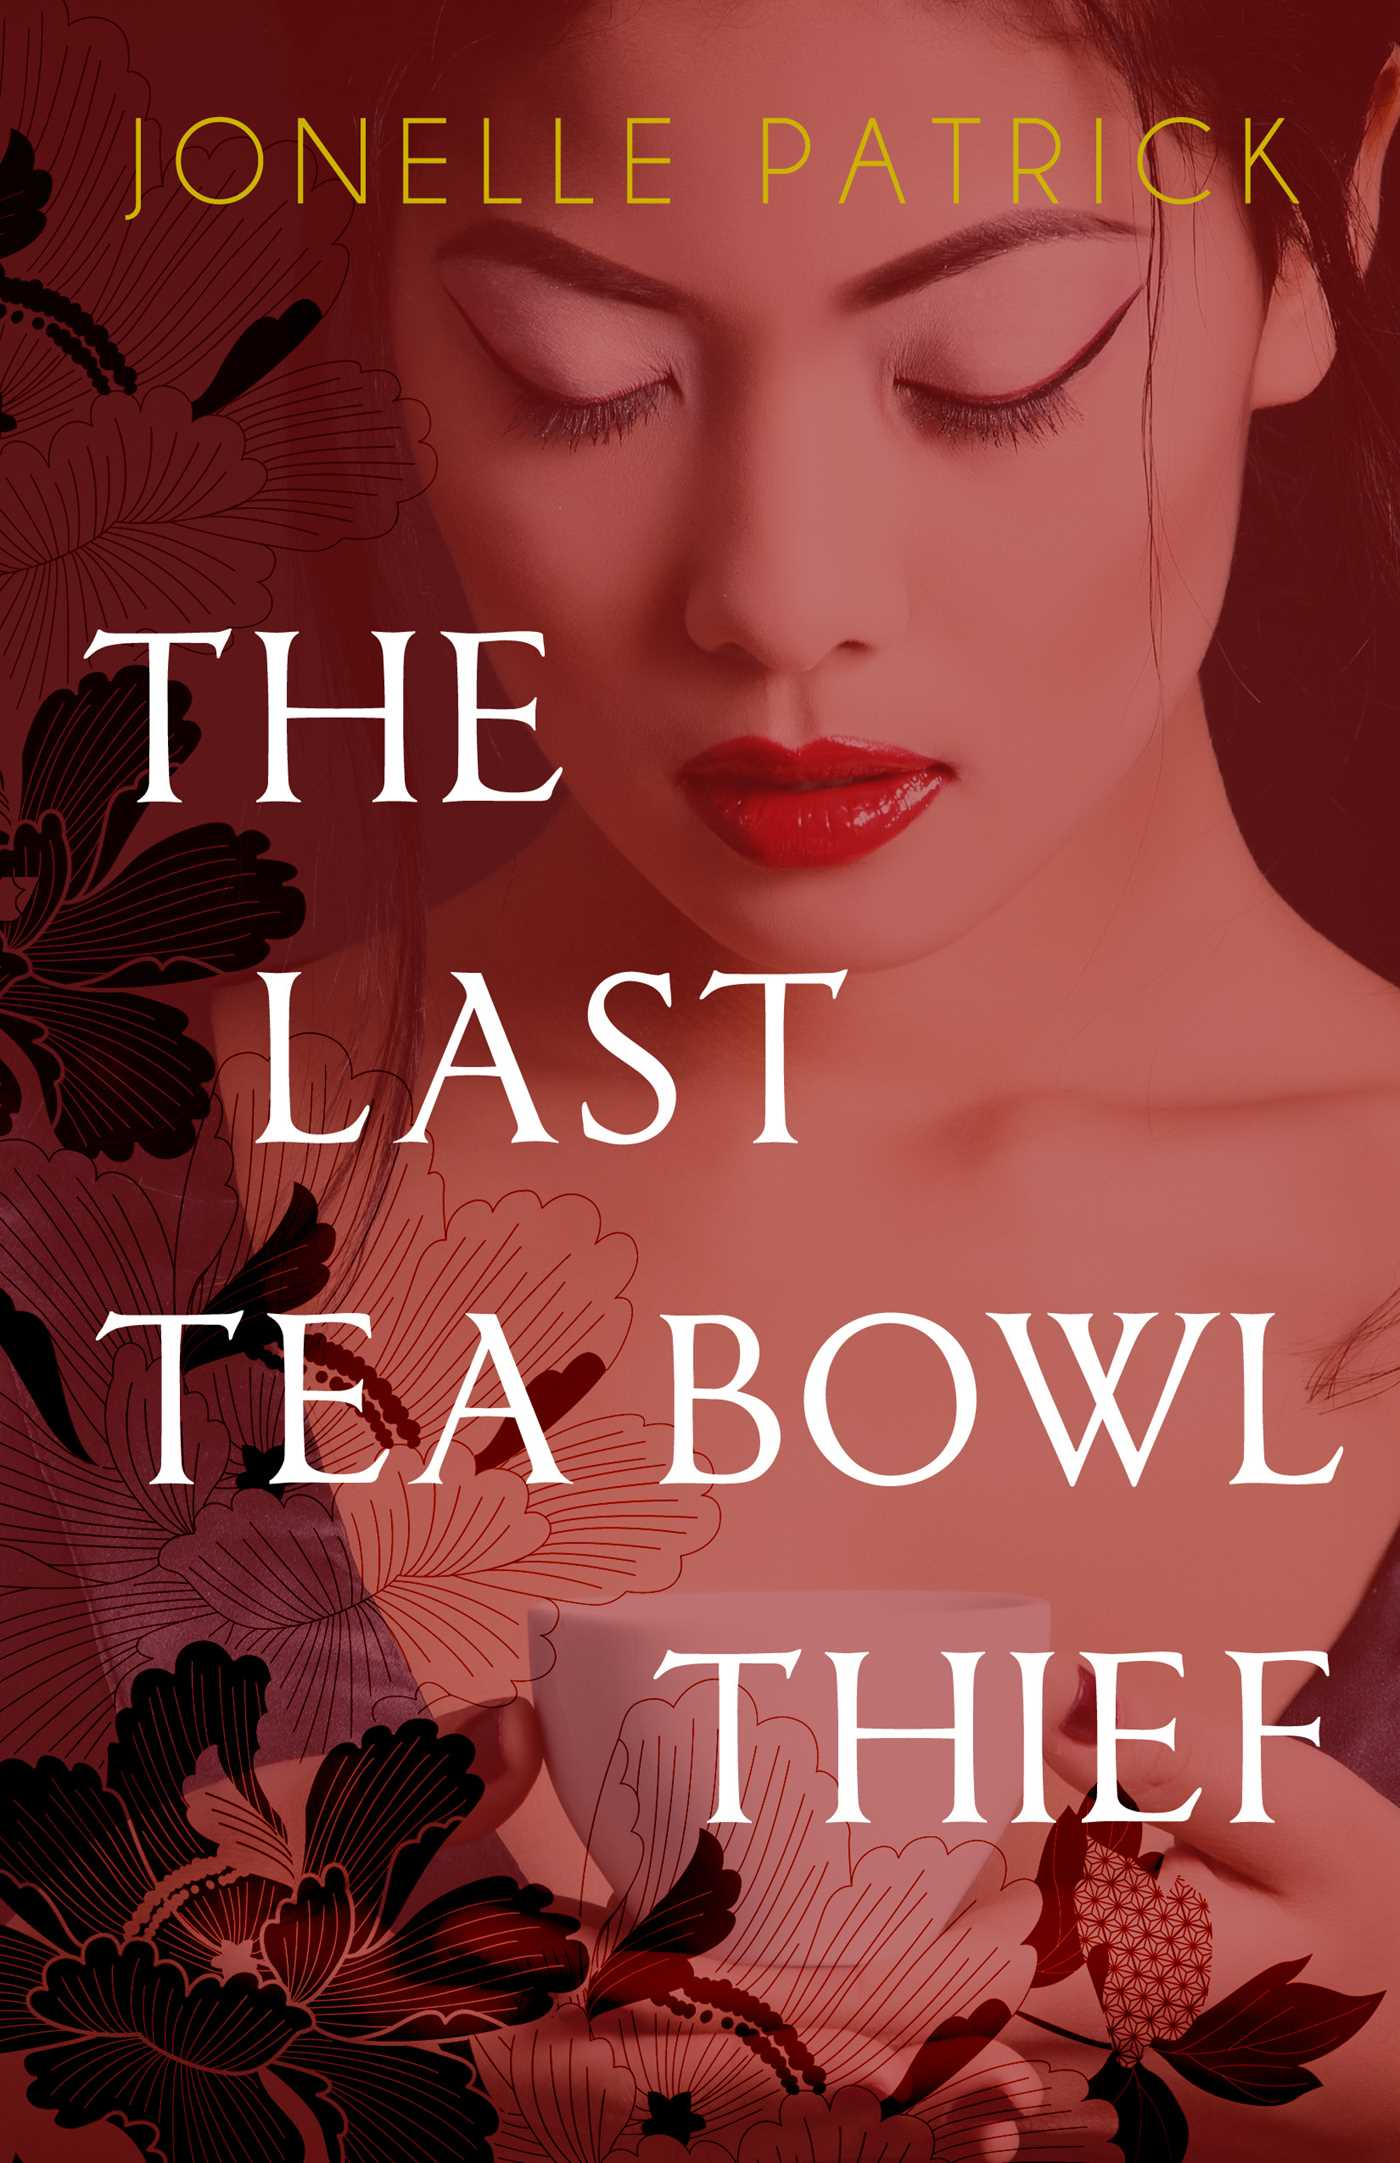 The Last Tea Bowl Thief